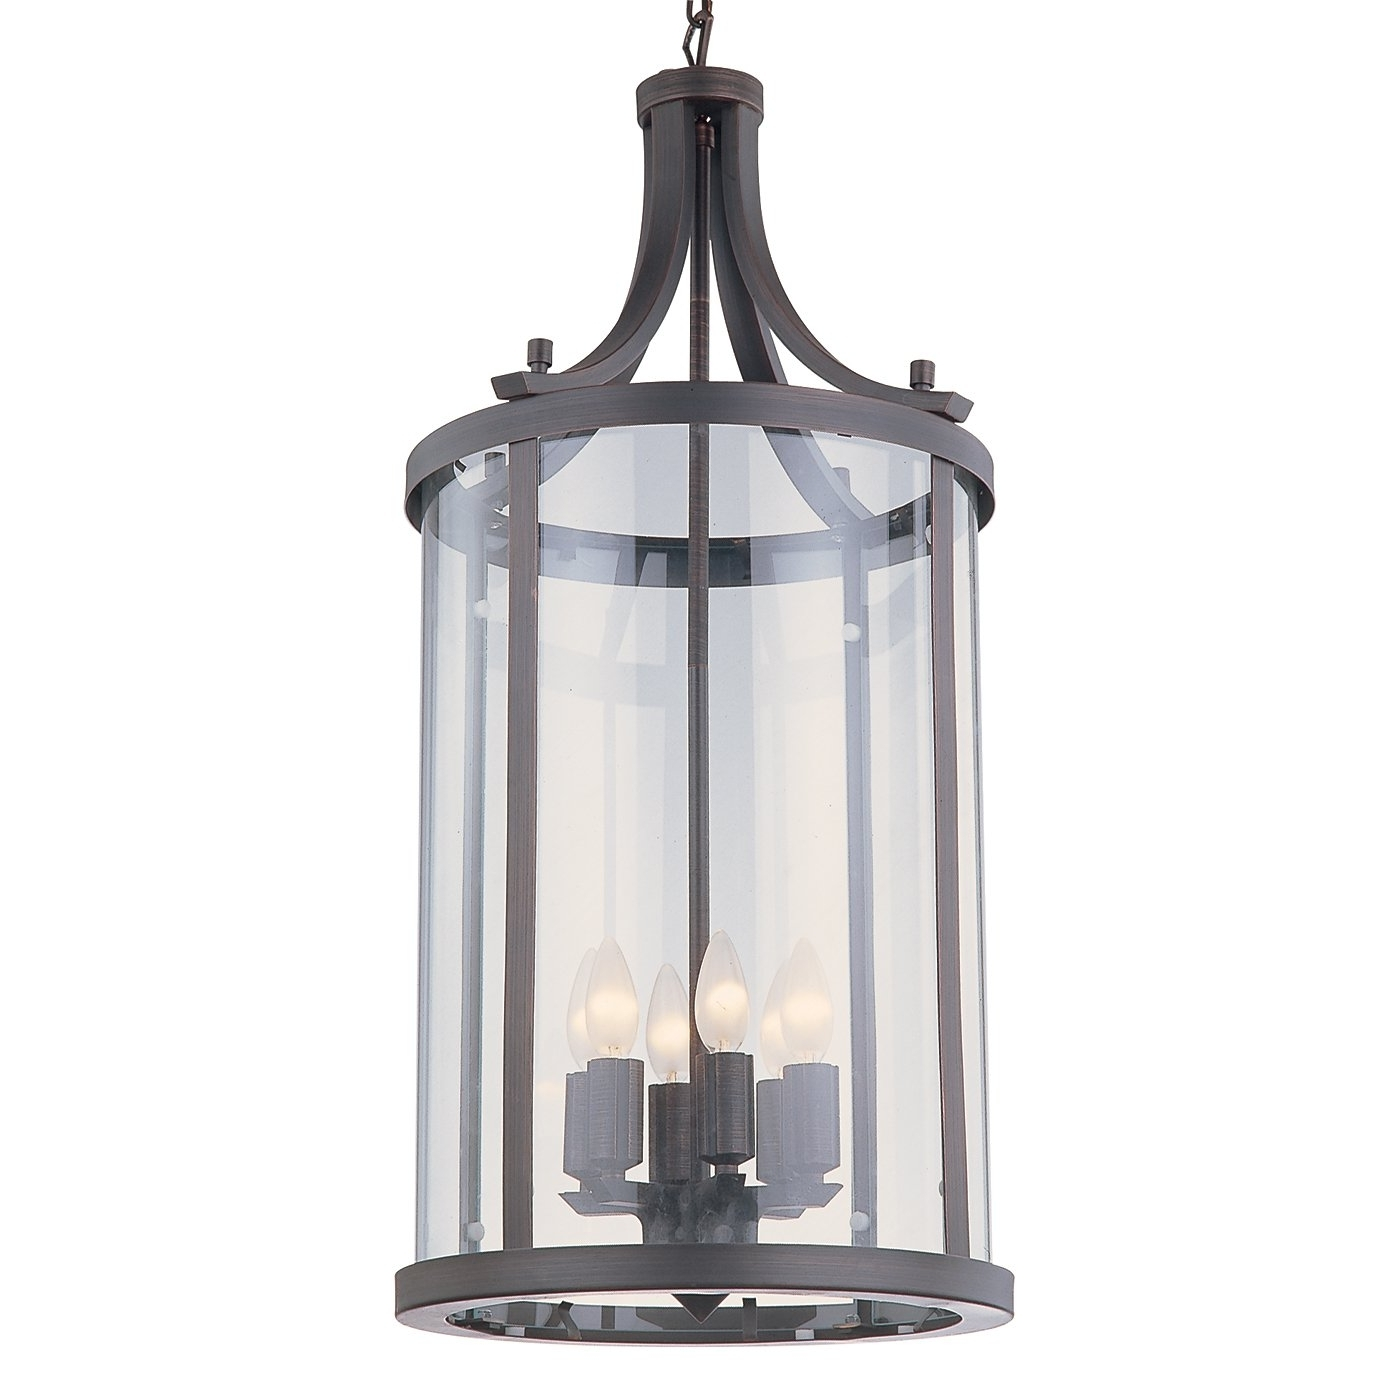 Preferred Foyer Lighting Lowes – Trgn #919752Bf2521 With Regard To Outdoor Entrance Ceiling Lights (View 15 of 20)